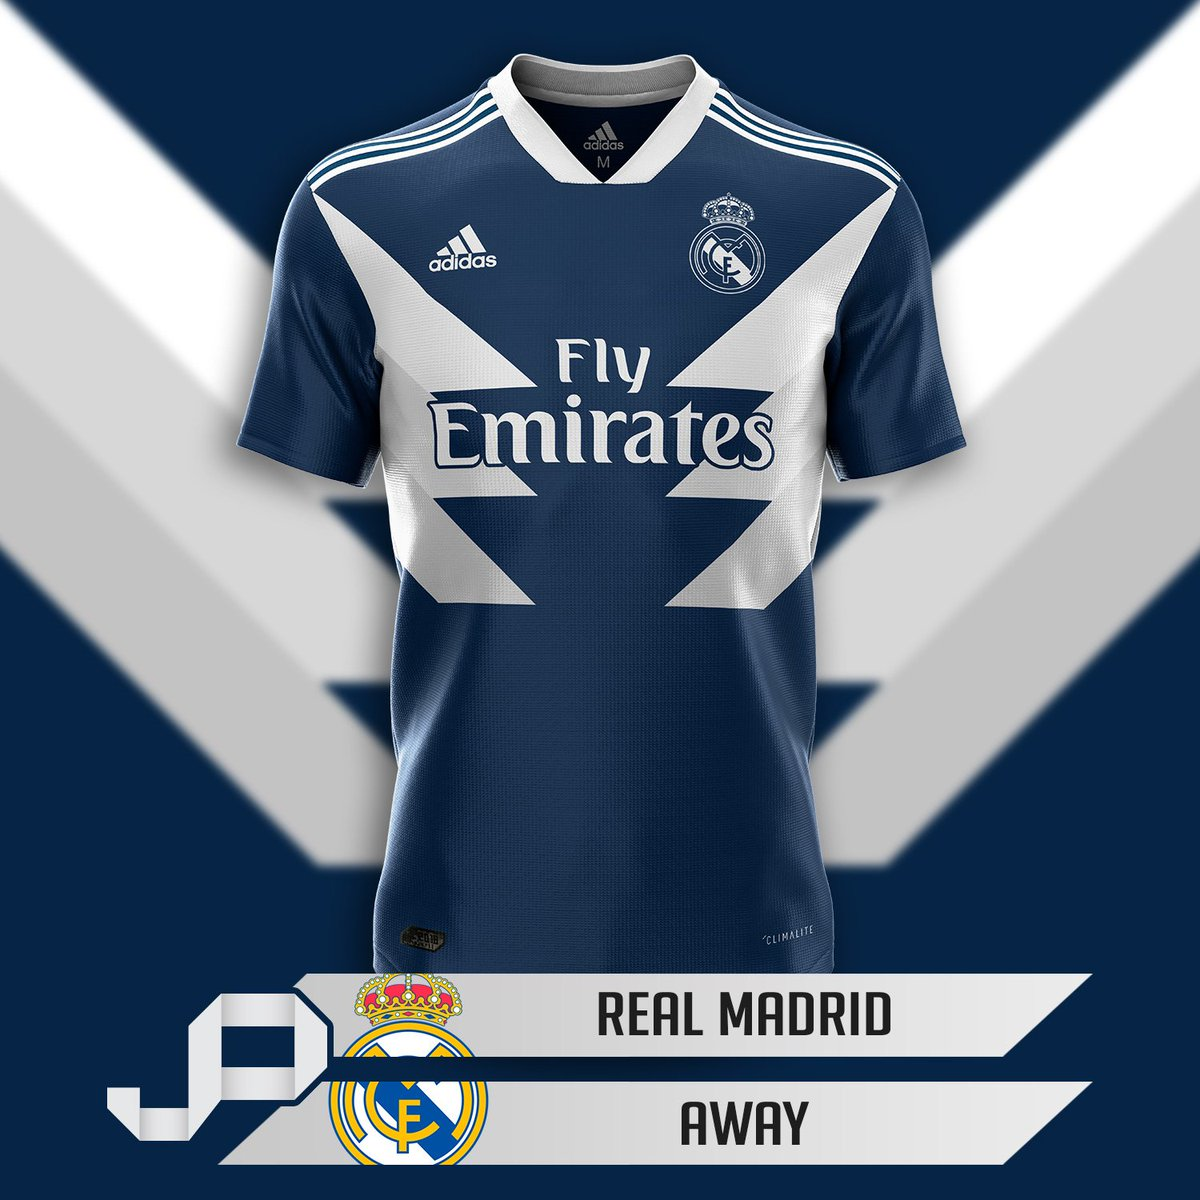 size 40 059f3 01379 Real Madrid Away Concept Kit. Rate 1-10! 😊 #JPereira ...